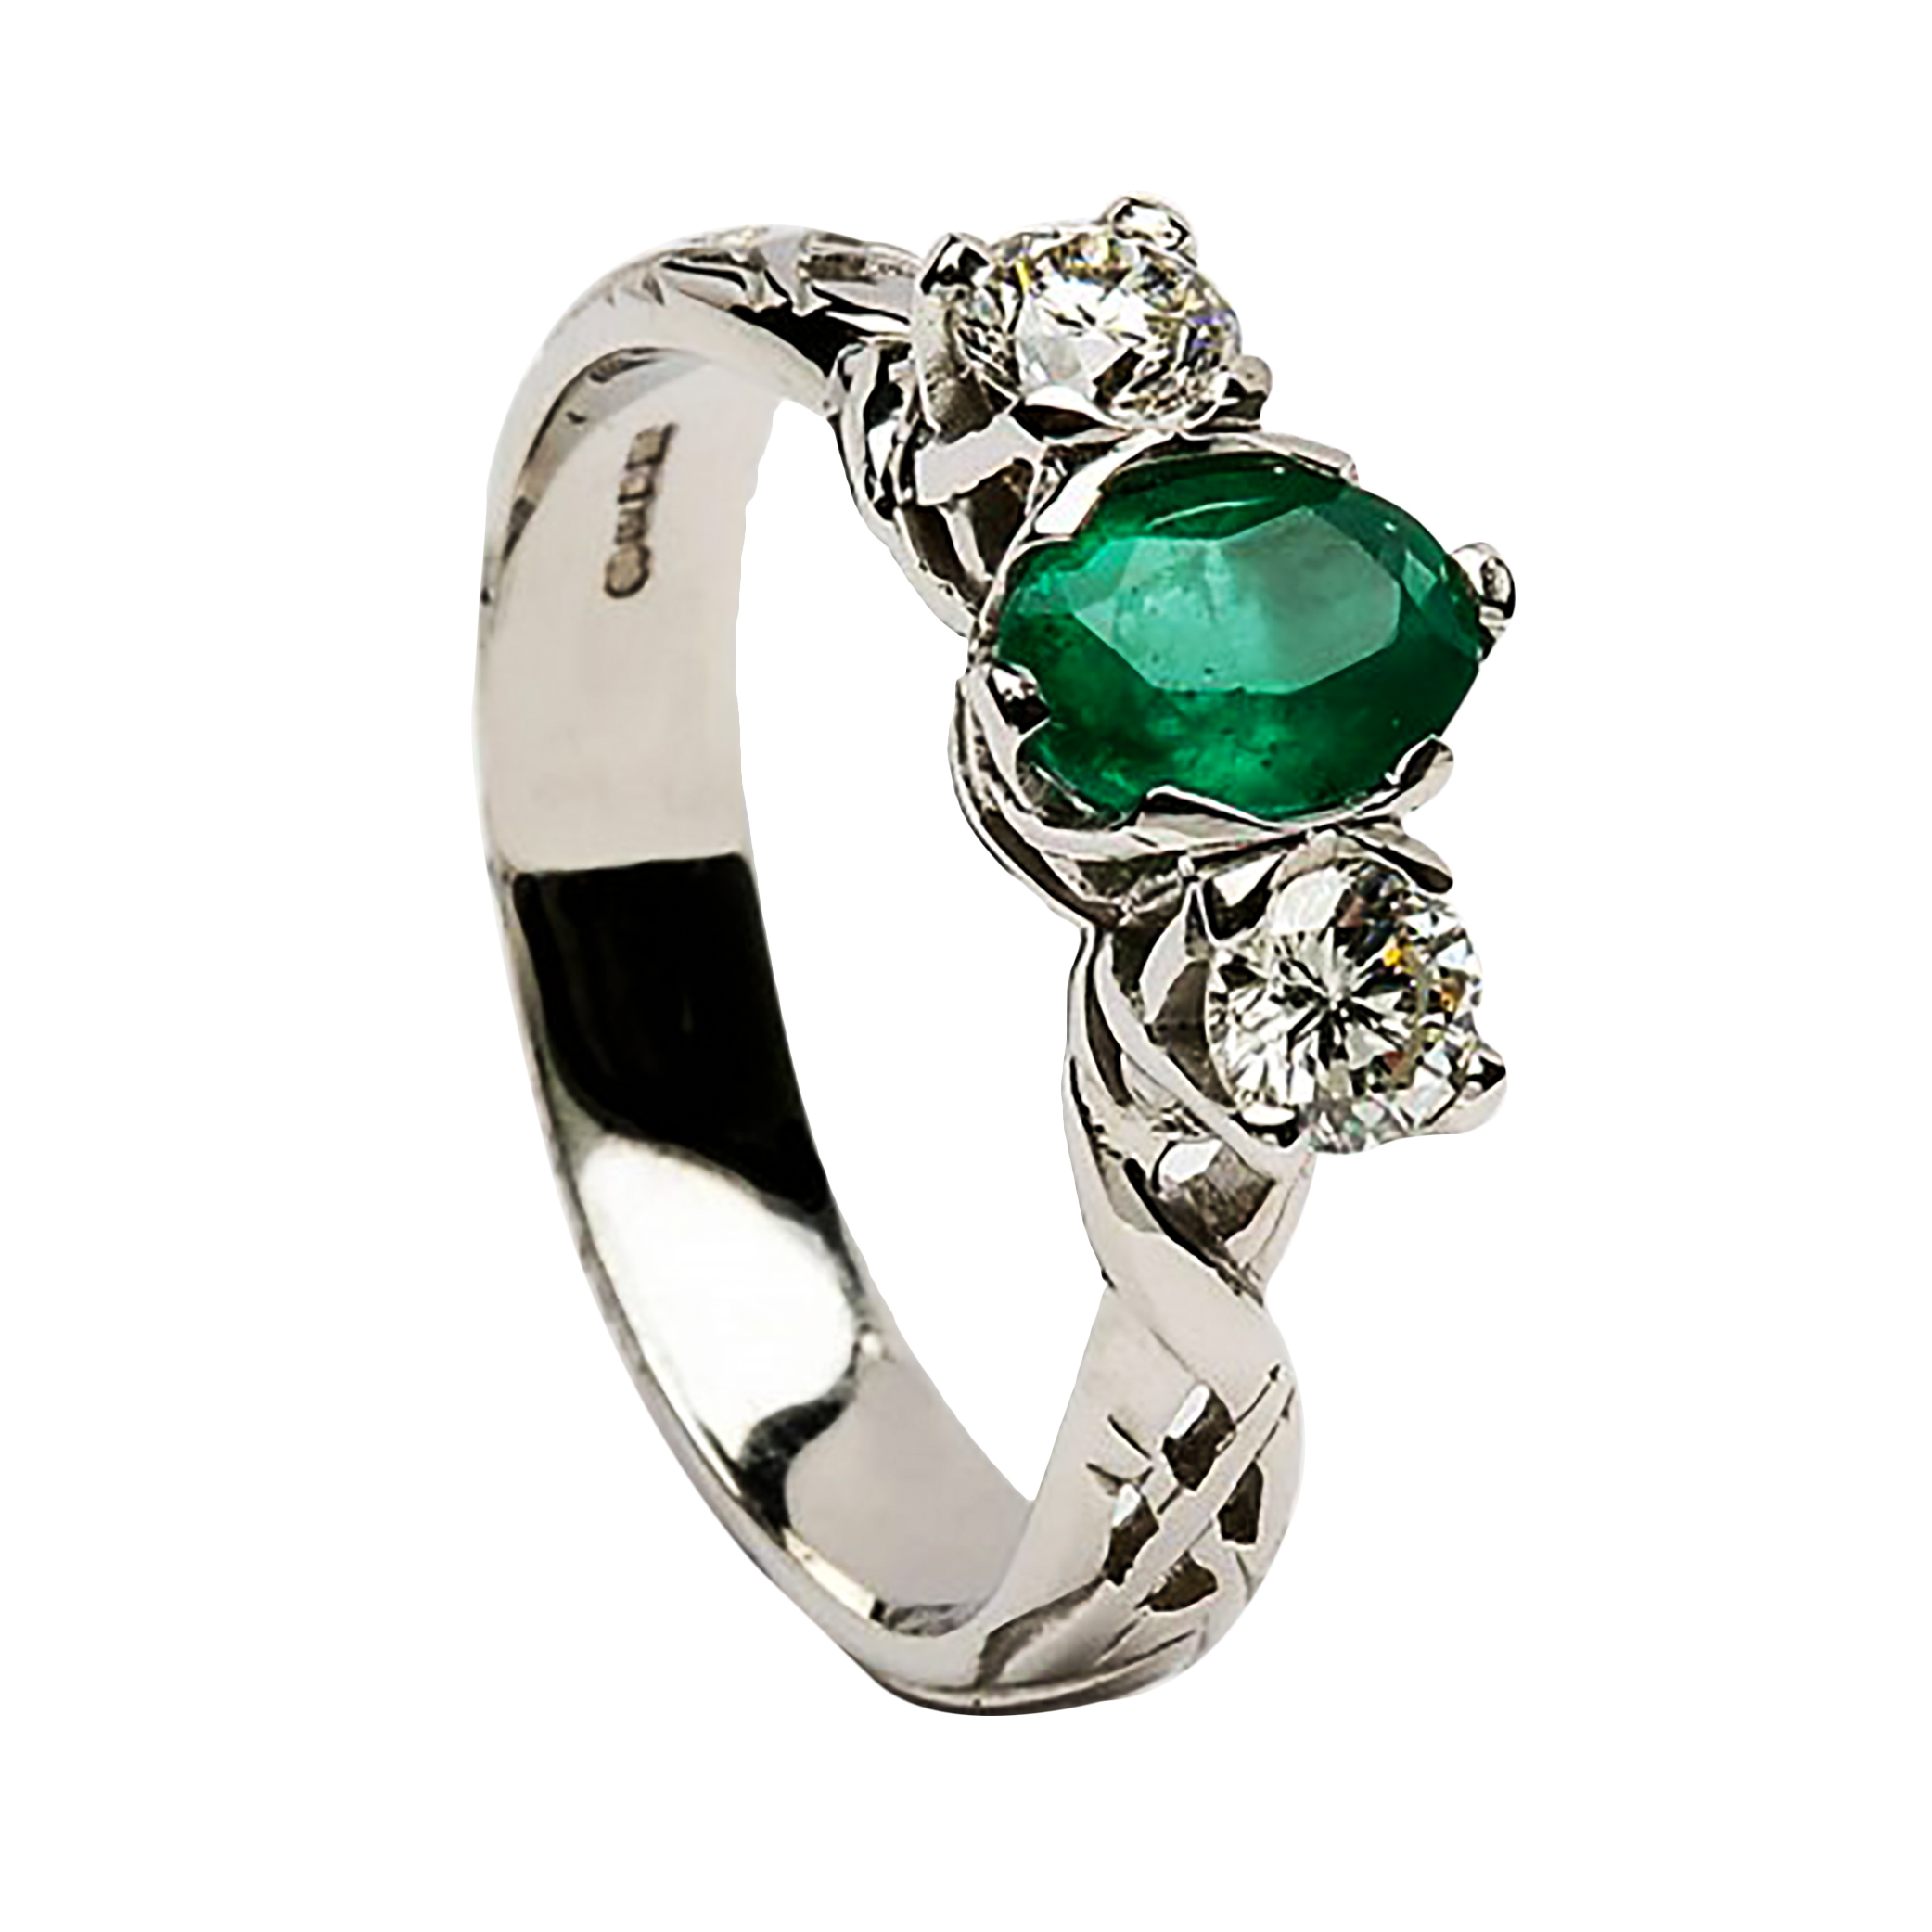 jewellery shop faberge upscale emotion scale ring the editor charmeuse c subsampling crop emerald faberg false product